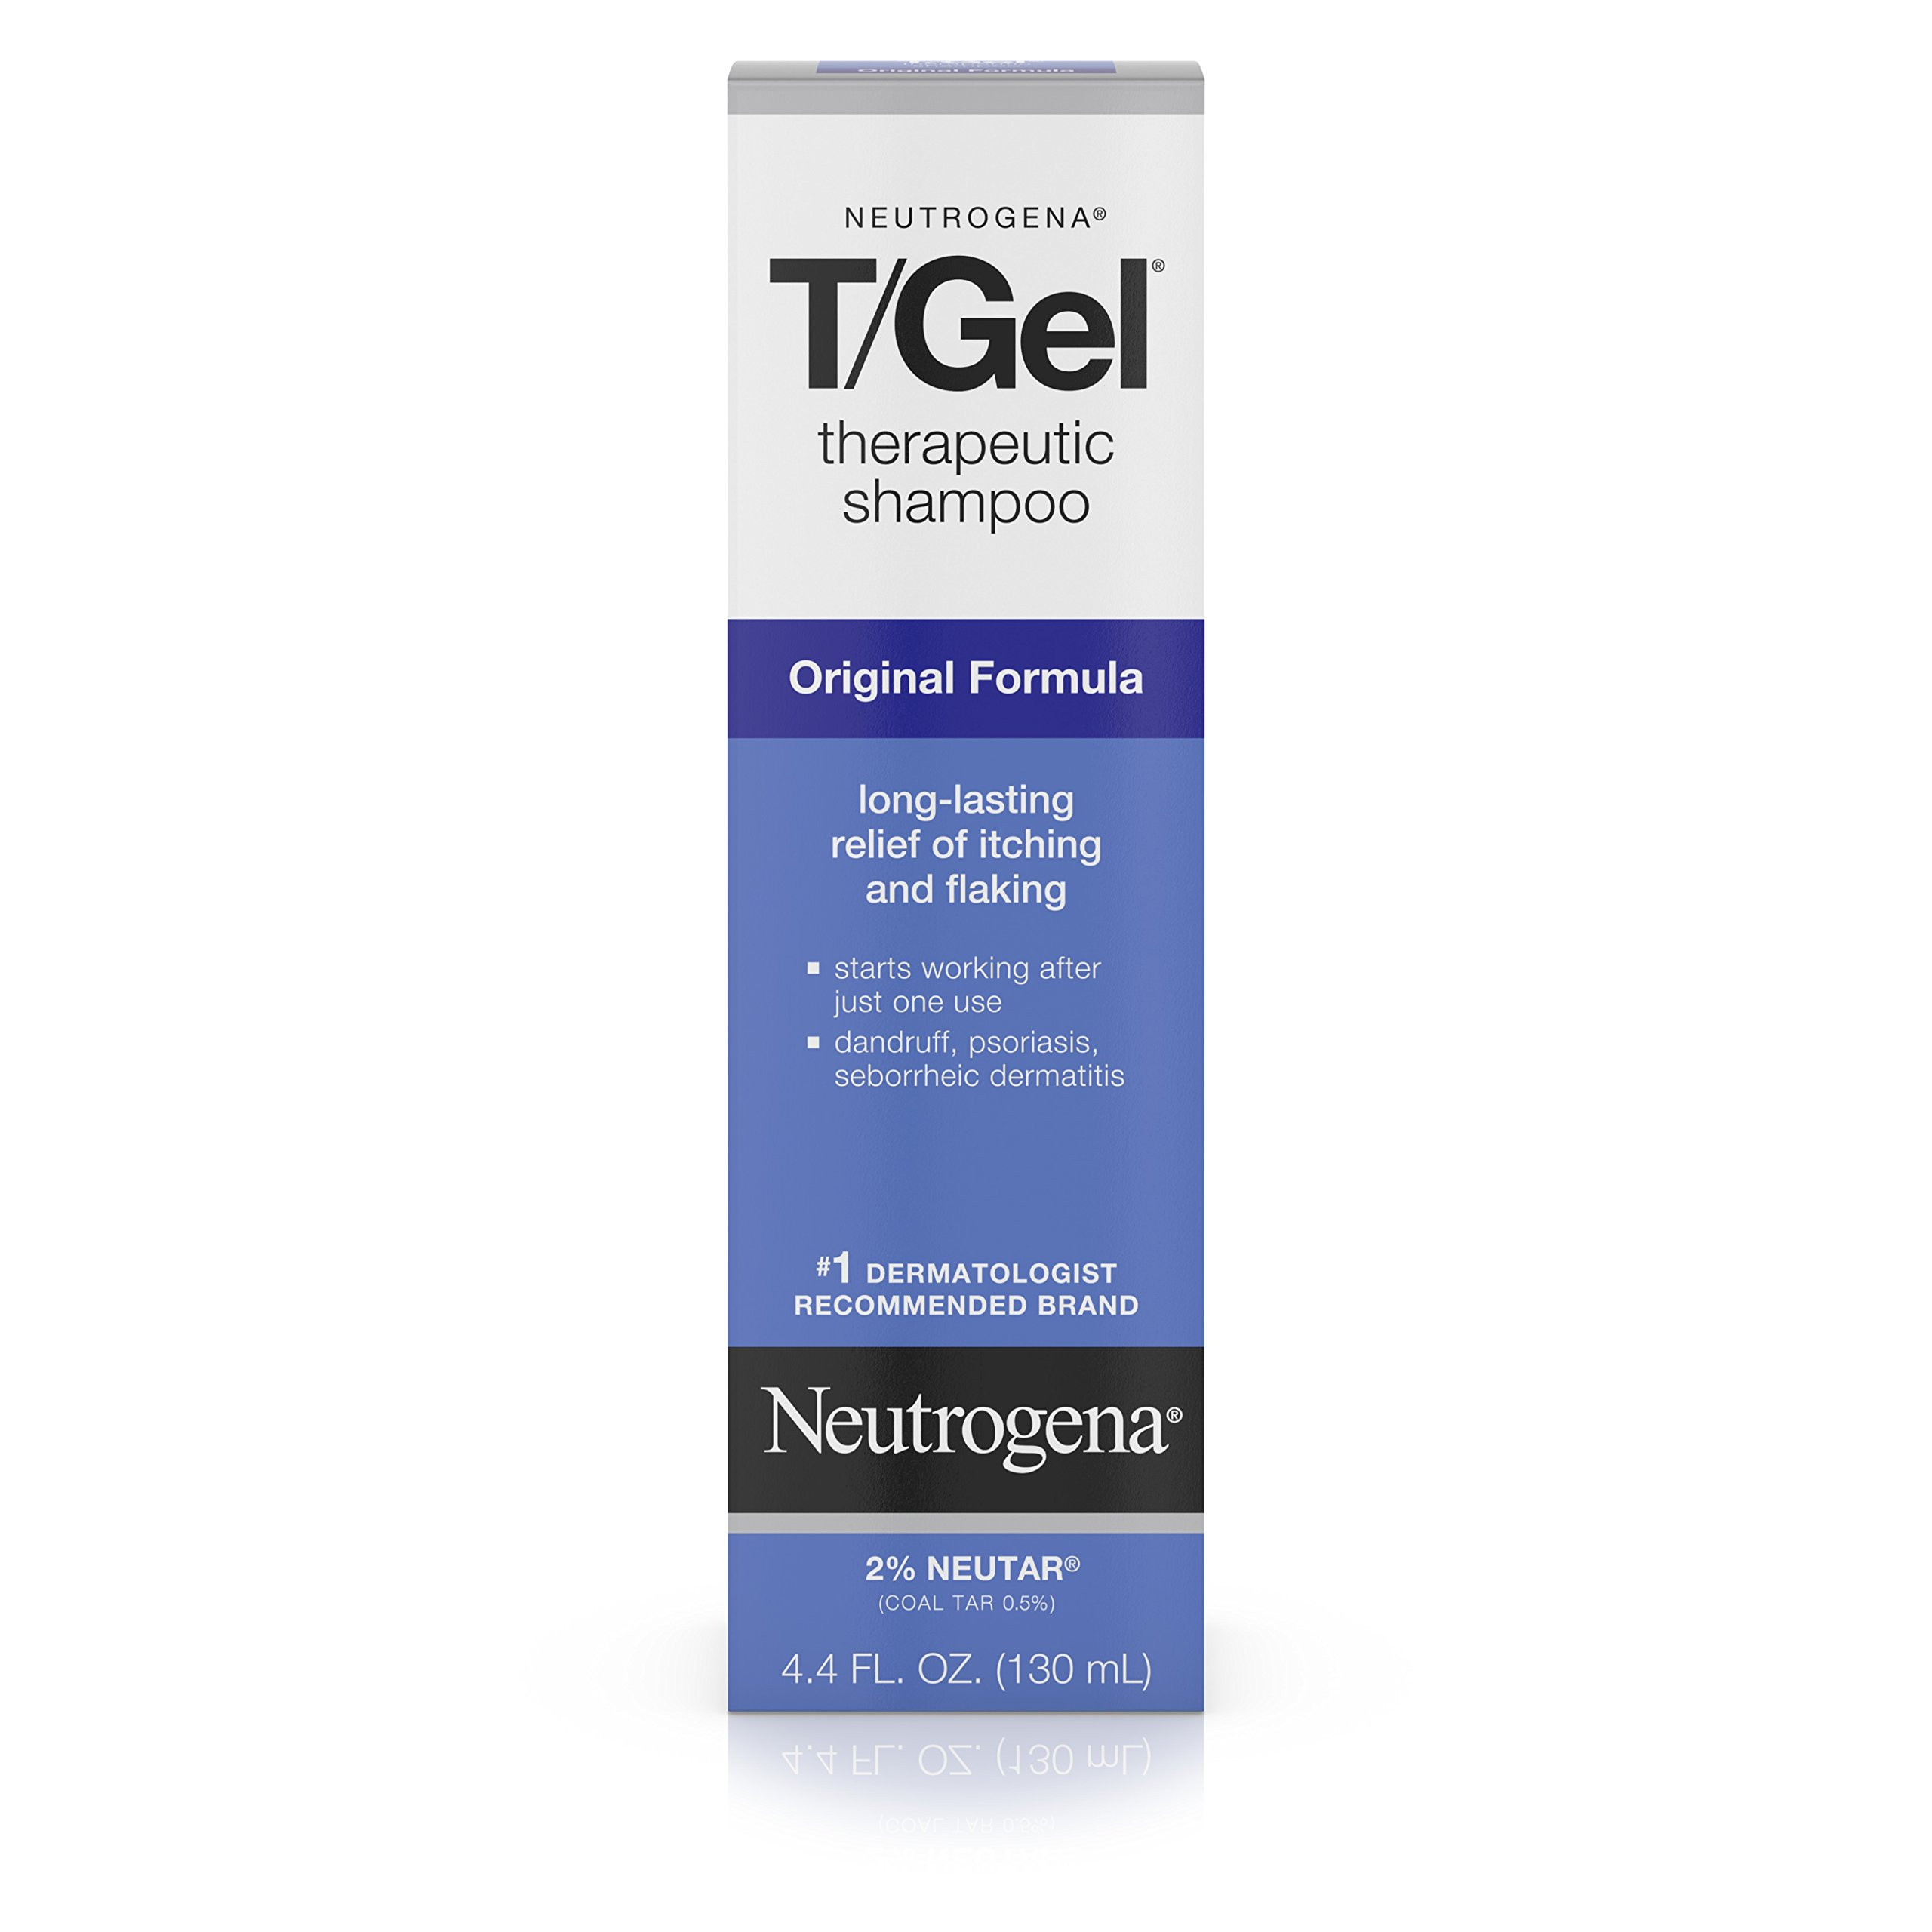 Neutrogena T/Gel Therapeutic Shampoo Original Formula, Dandruff Treatment, 4.4 Fl. Oz.